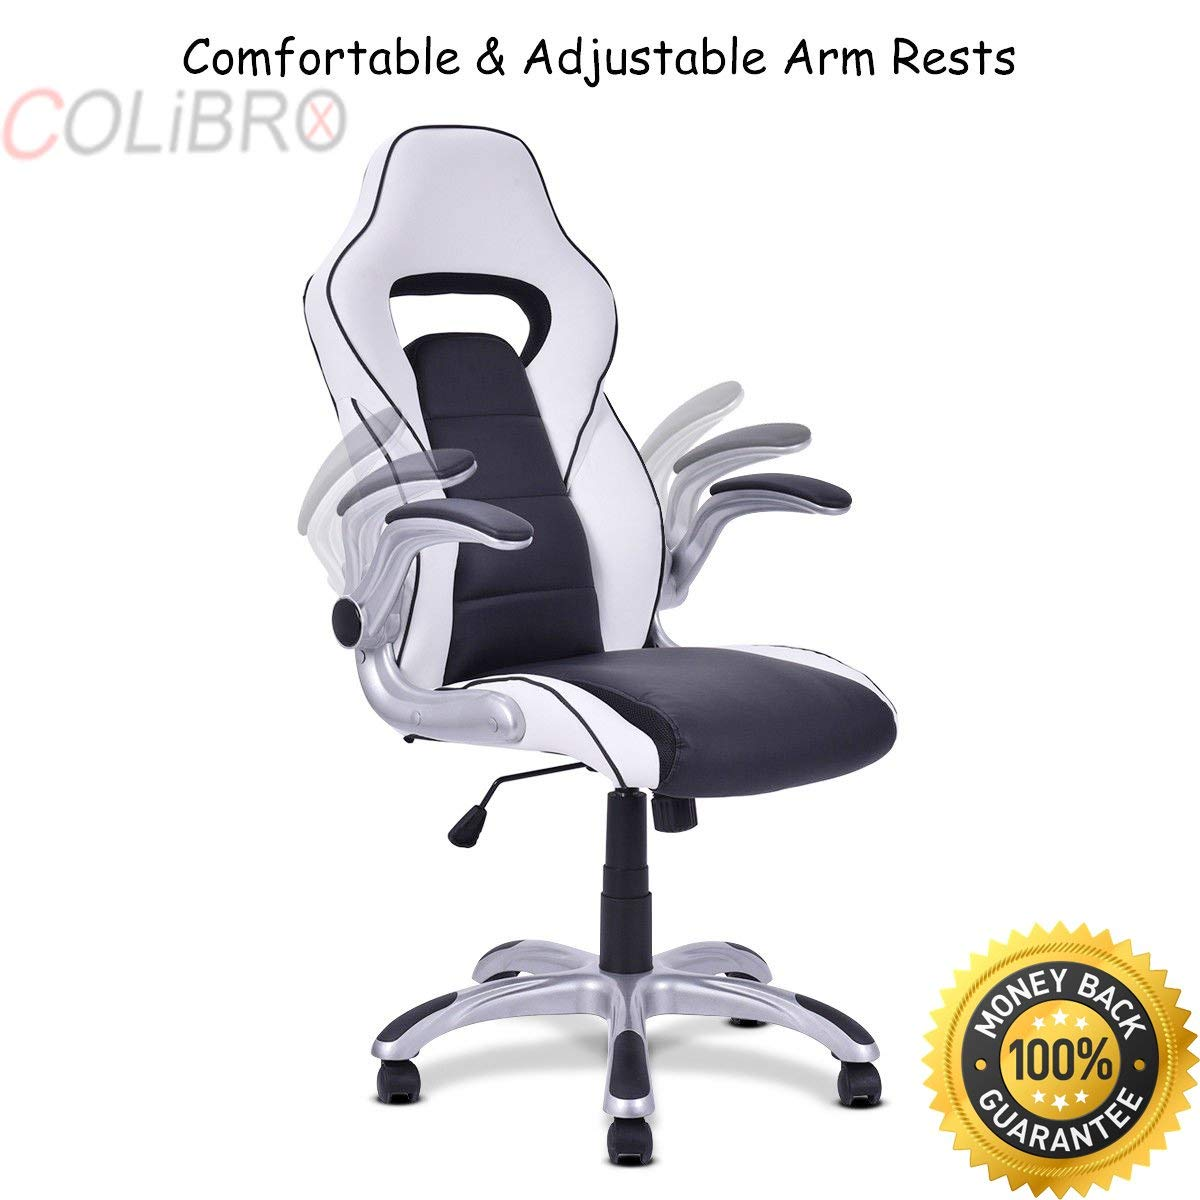 COLIBROX--High Back Executive Racing Style Office Chair Gaming Chair Adjustable Armrest. executive racing office chair pu leather swivel computer desk seat high-back. amazon racing seat office chair.